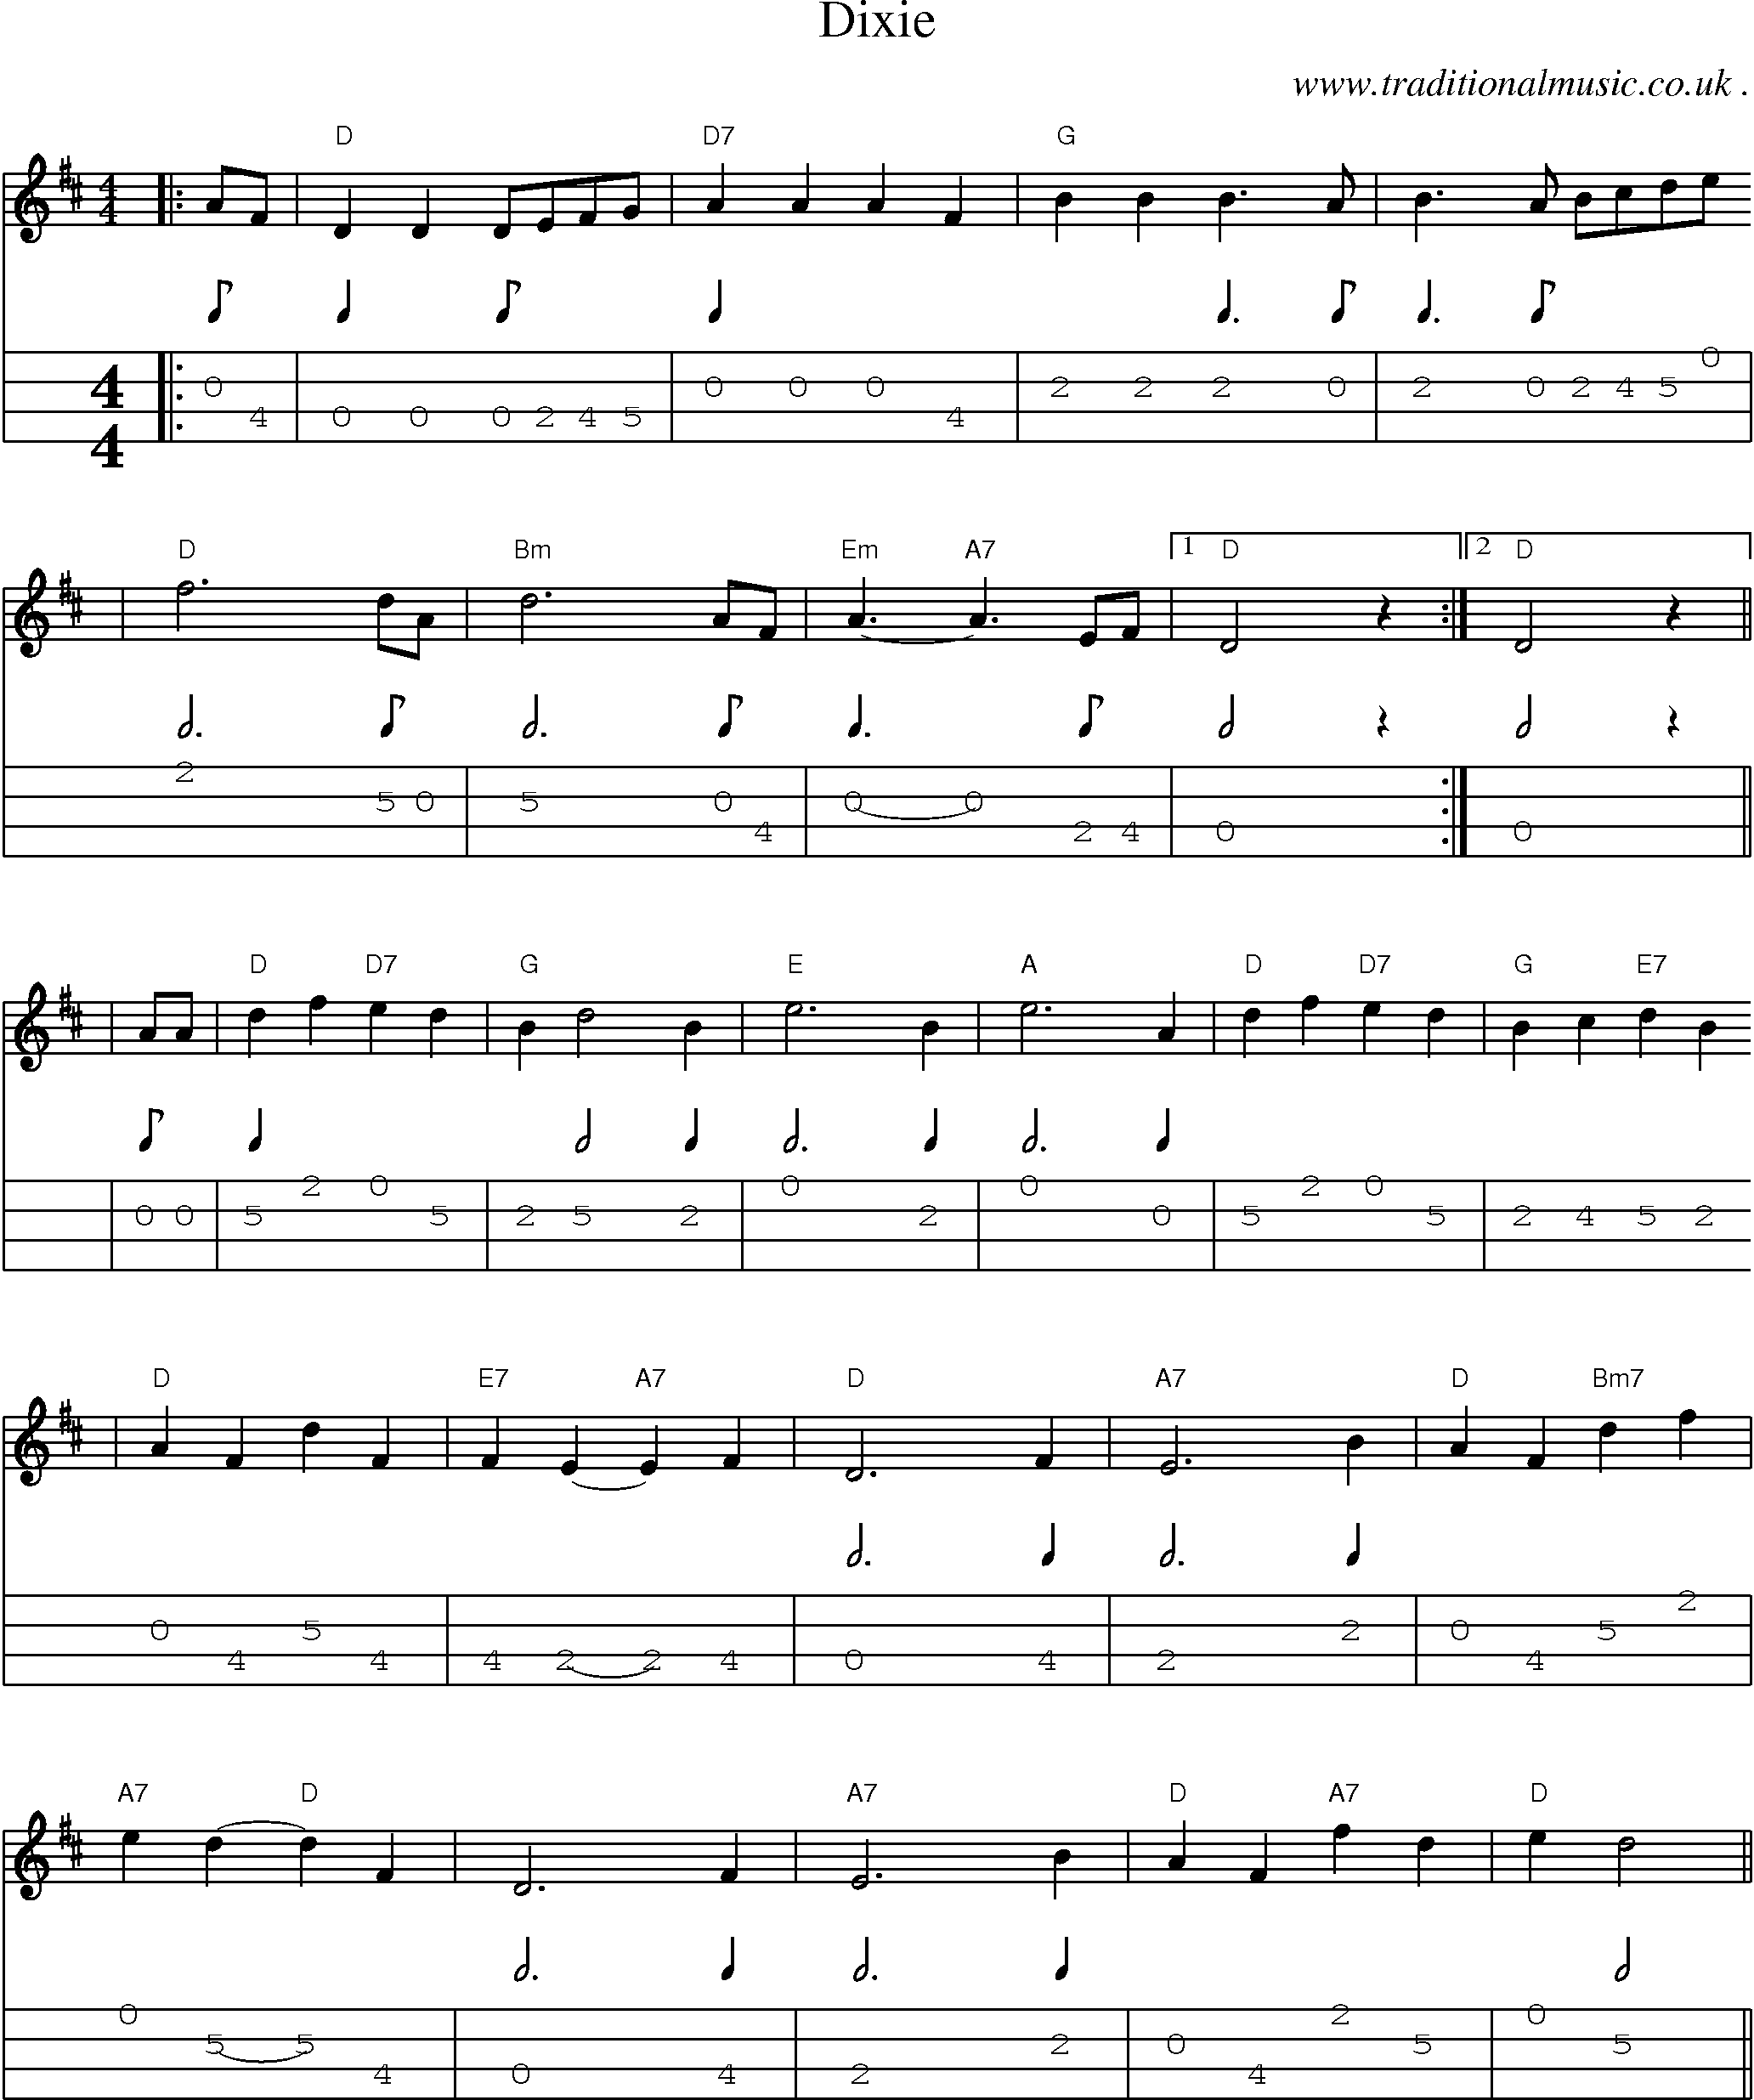 American old time music scores and tabs for mandolin dixie american old time music scores and tabs for mandolin dixie hexwebz Images